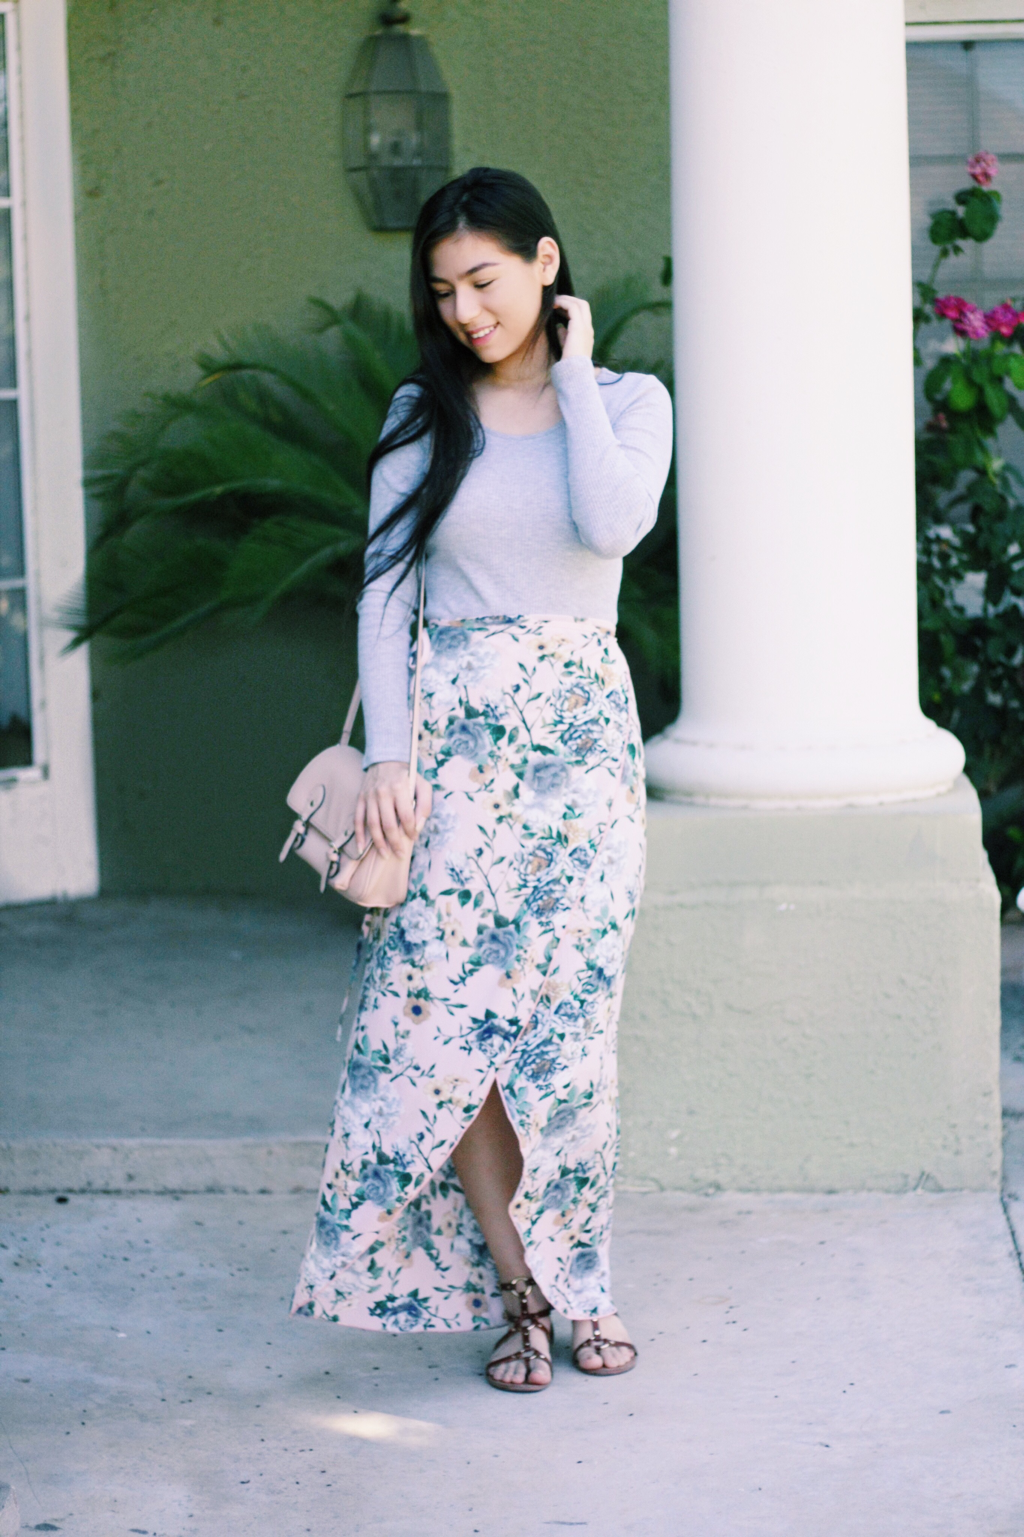 Floral wrap skirt and grey long sleeve featuring nicole from pkid